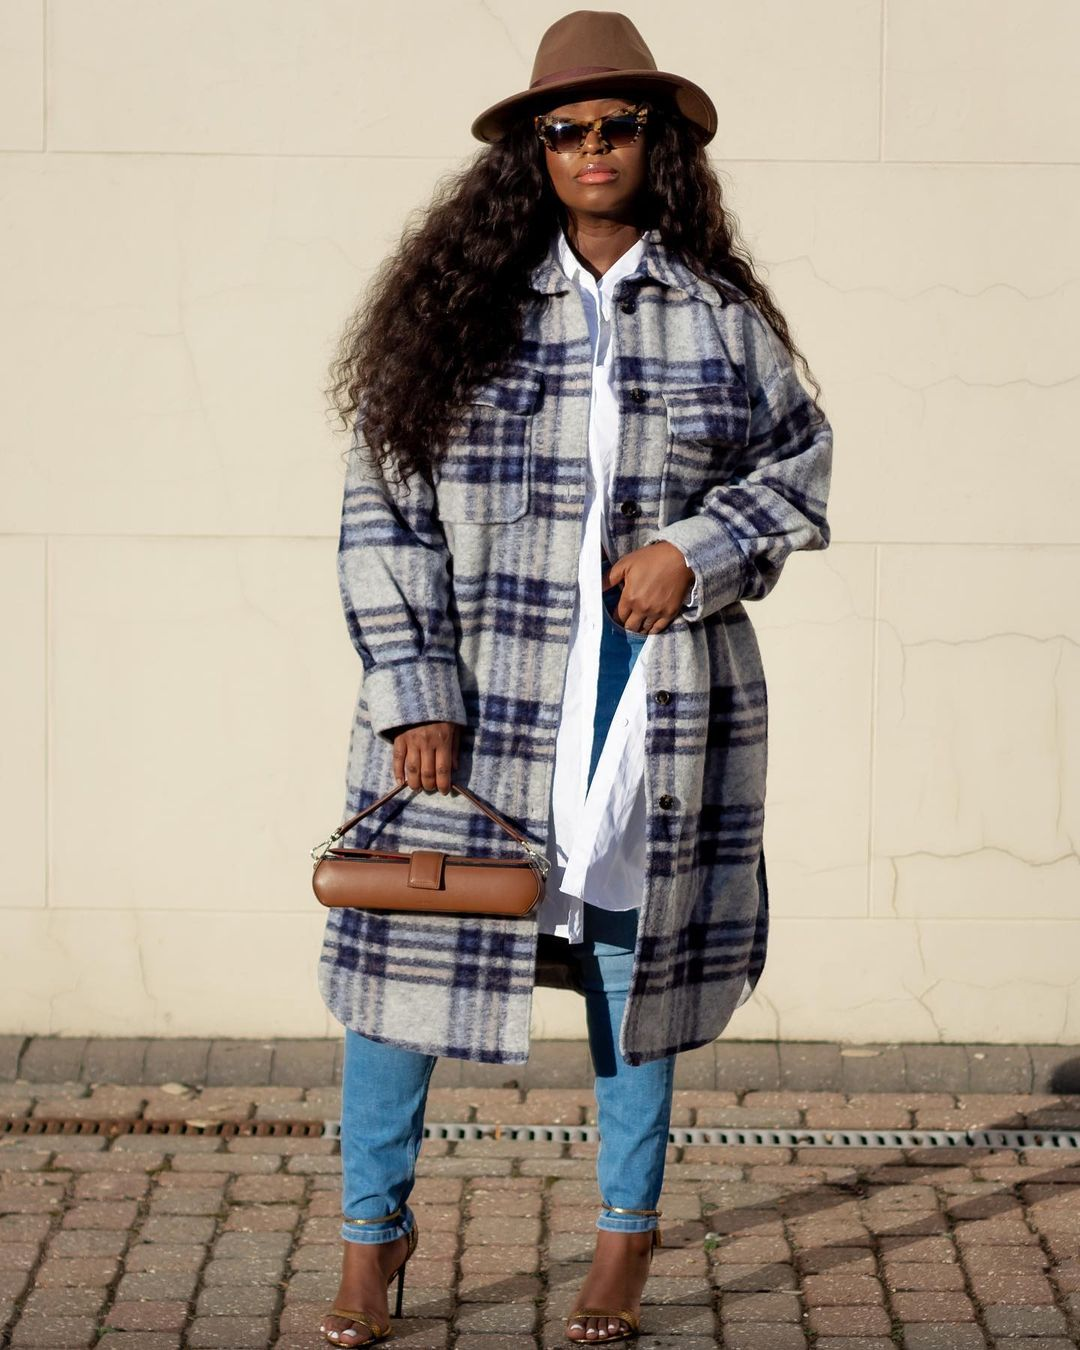 A Shacket Is a Must-Have Trend to Buy This Season